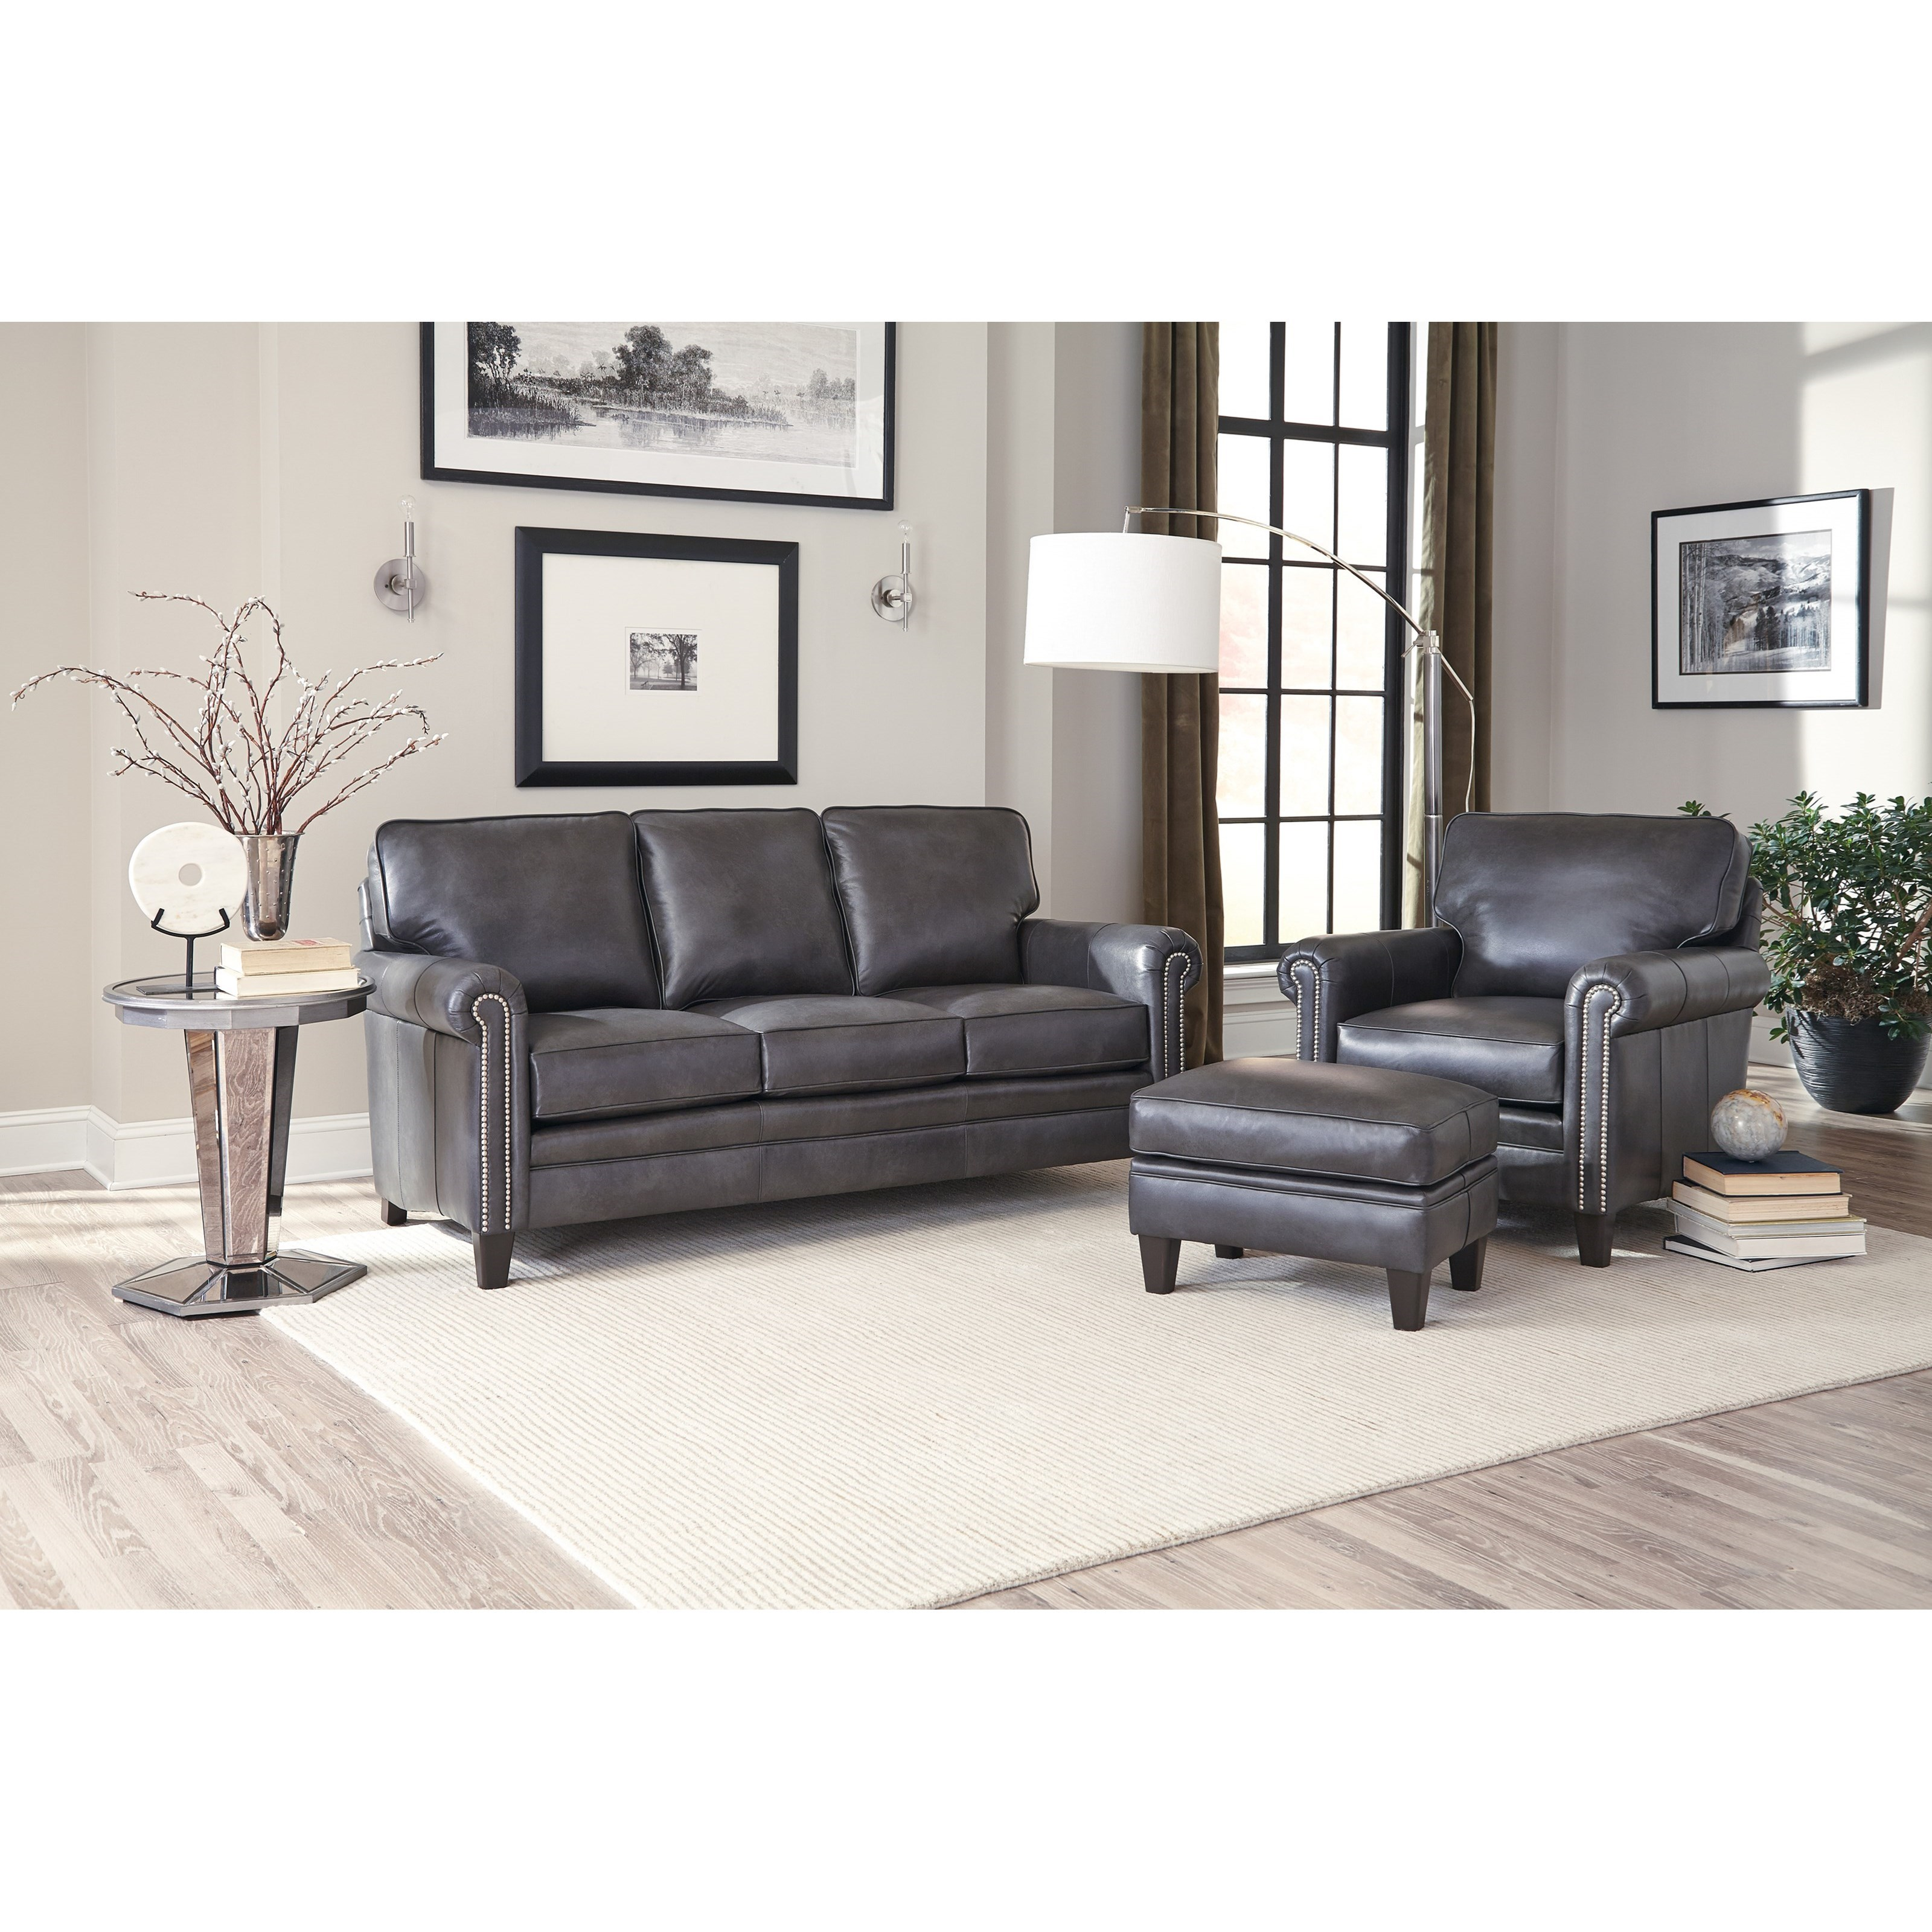 Smith brothers 234 stationary living room group dunk for Living room furniture groups